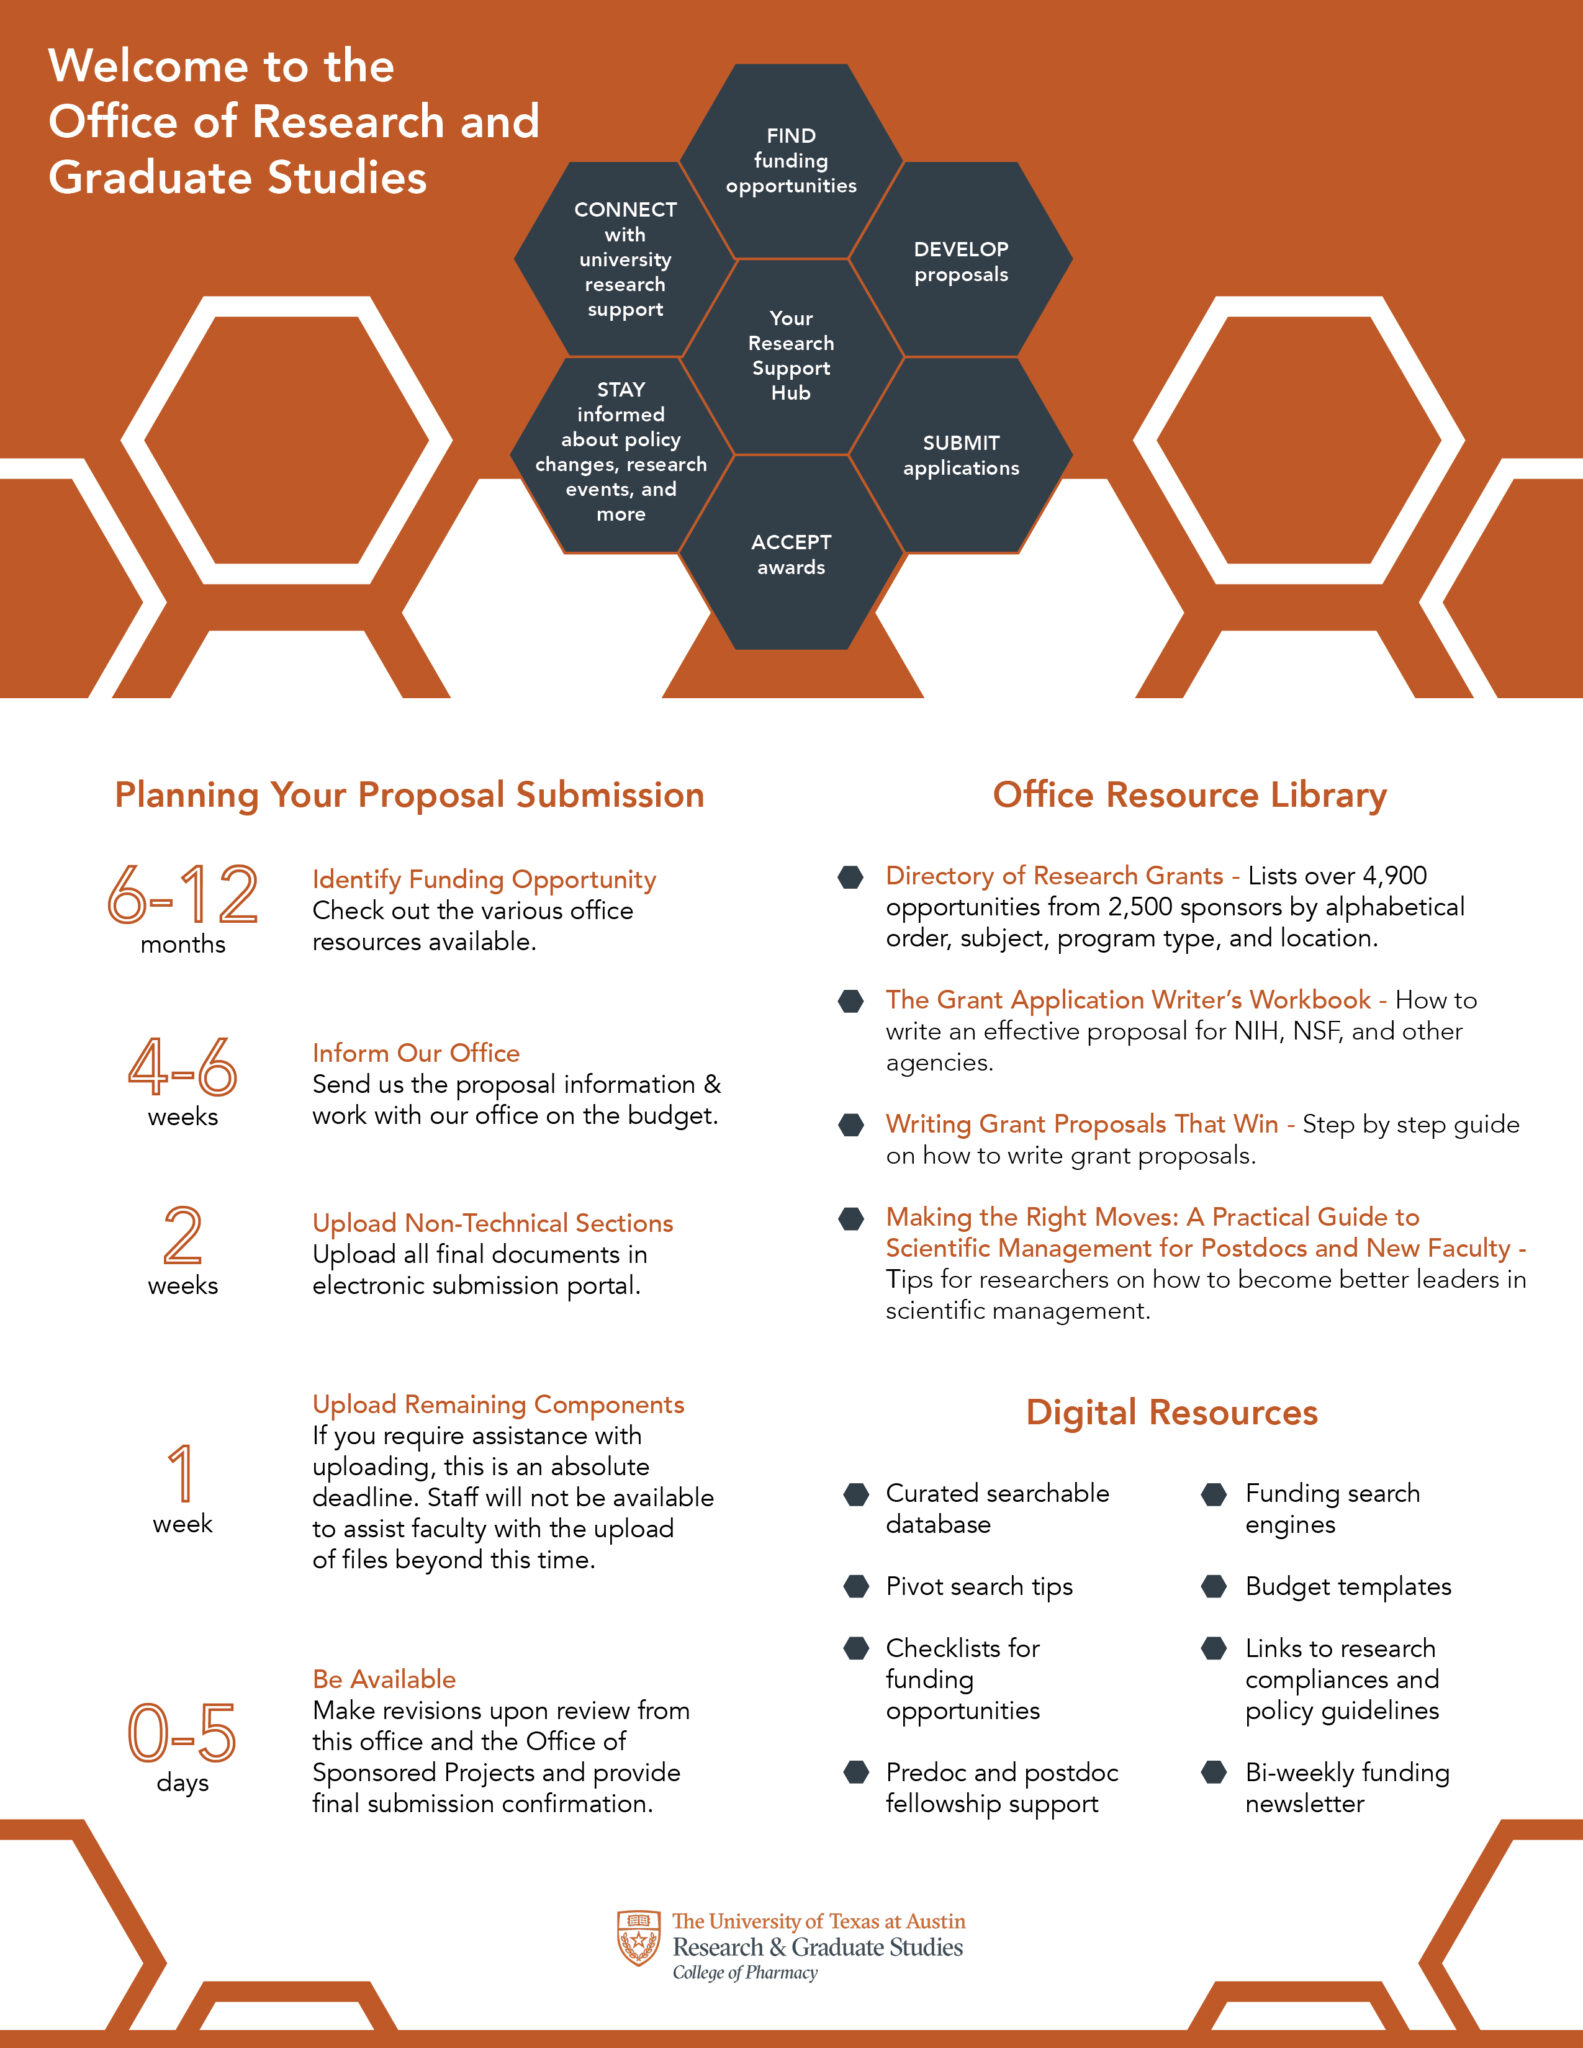 office of research and graduate studies info graphic